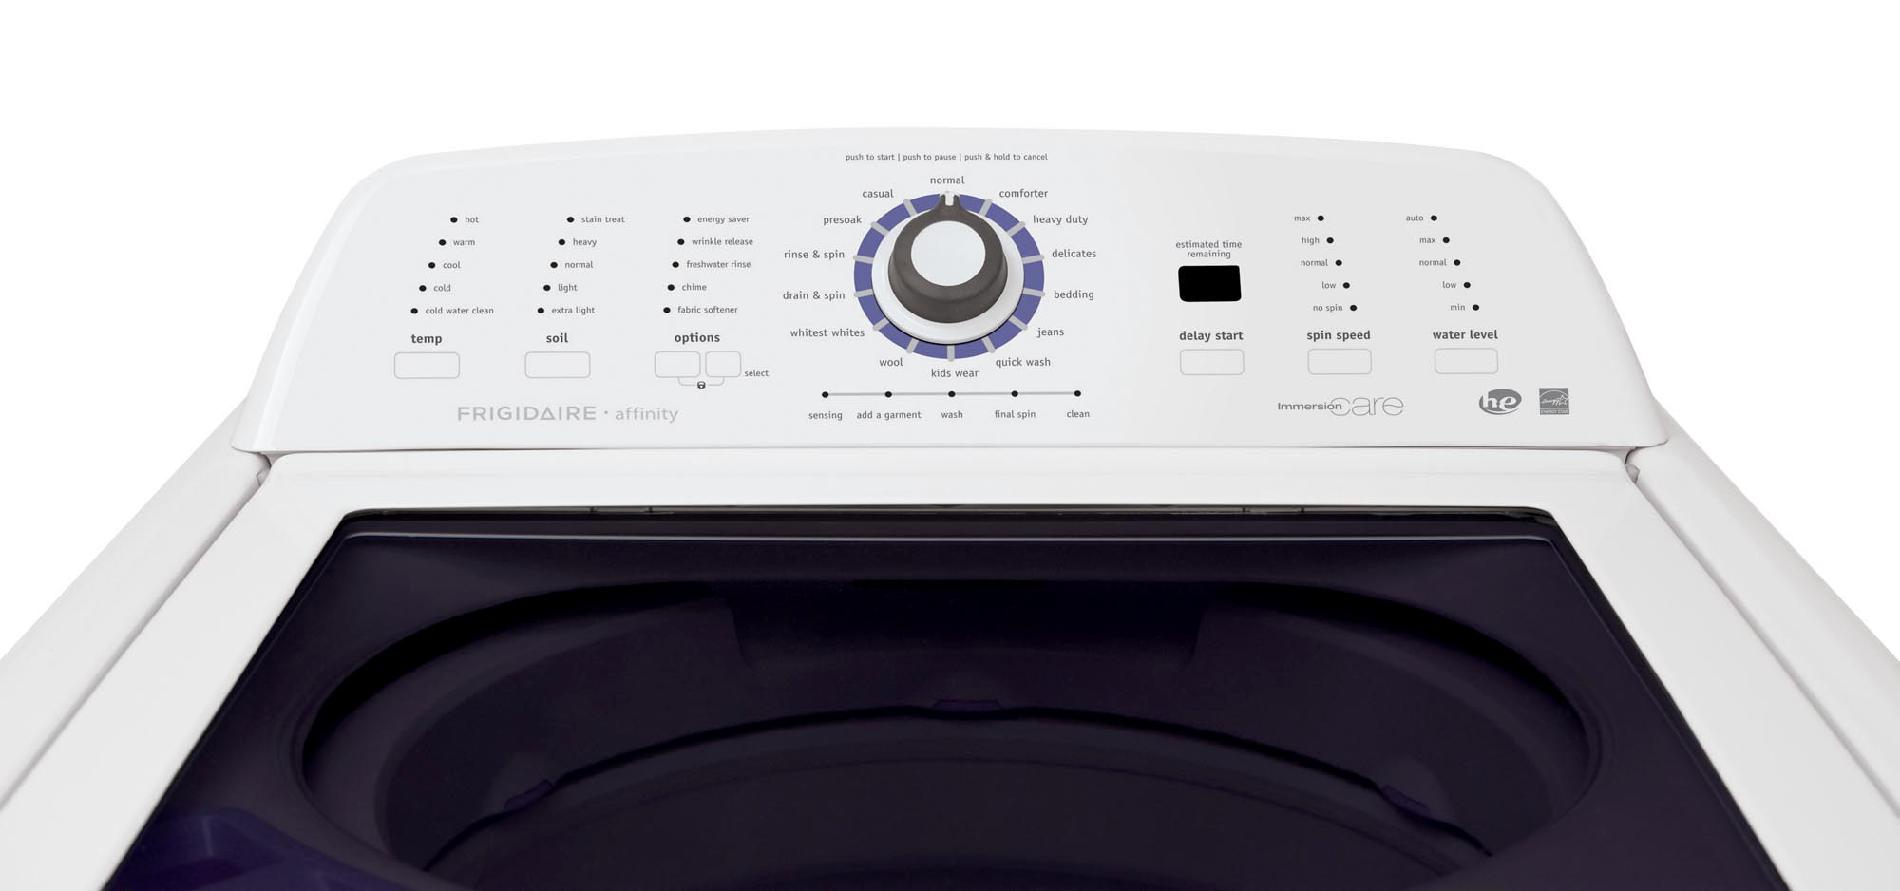 Frigidaire Affinity 3.4 cu. ft. Top-Load Washer w/ WaterFall™ Wash Technology - White